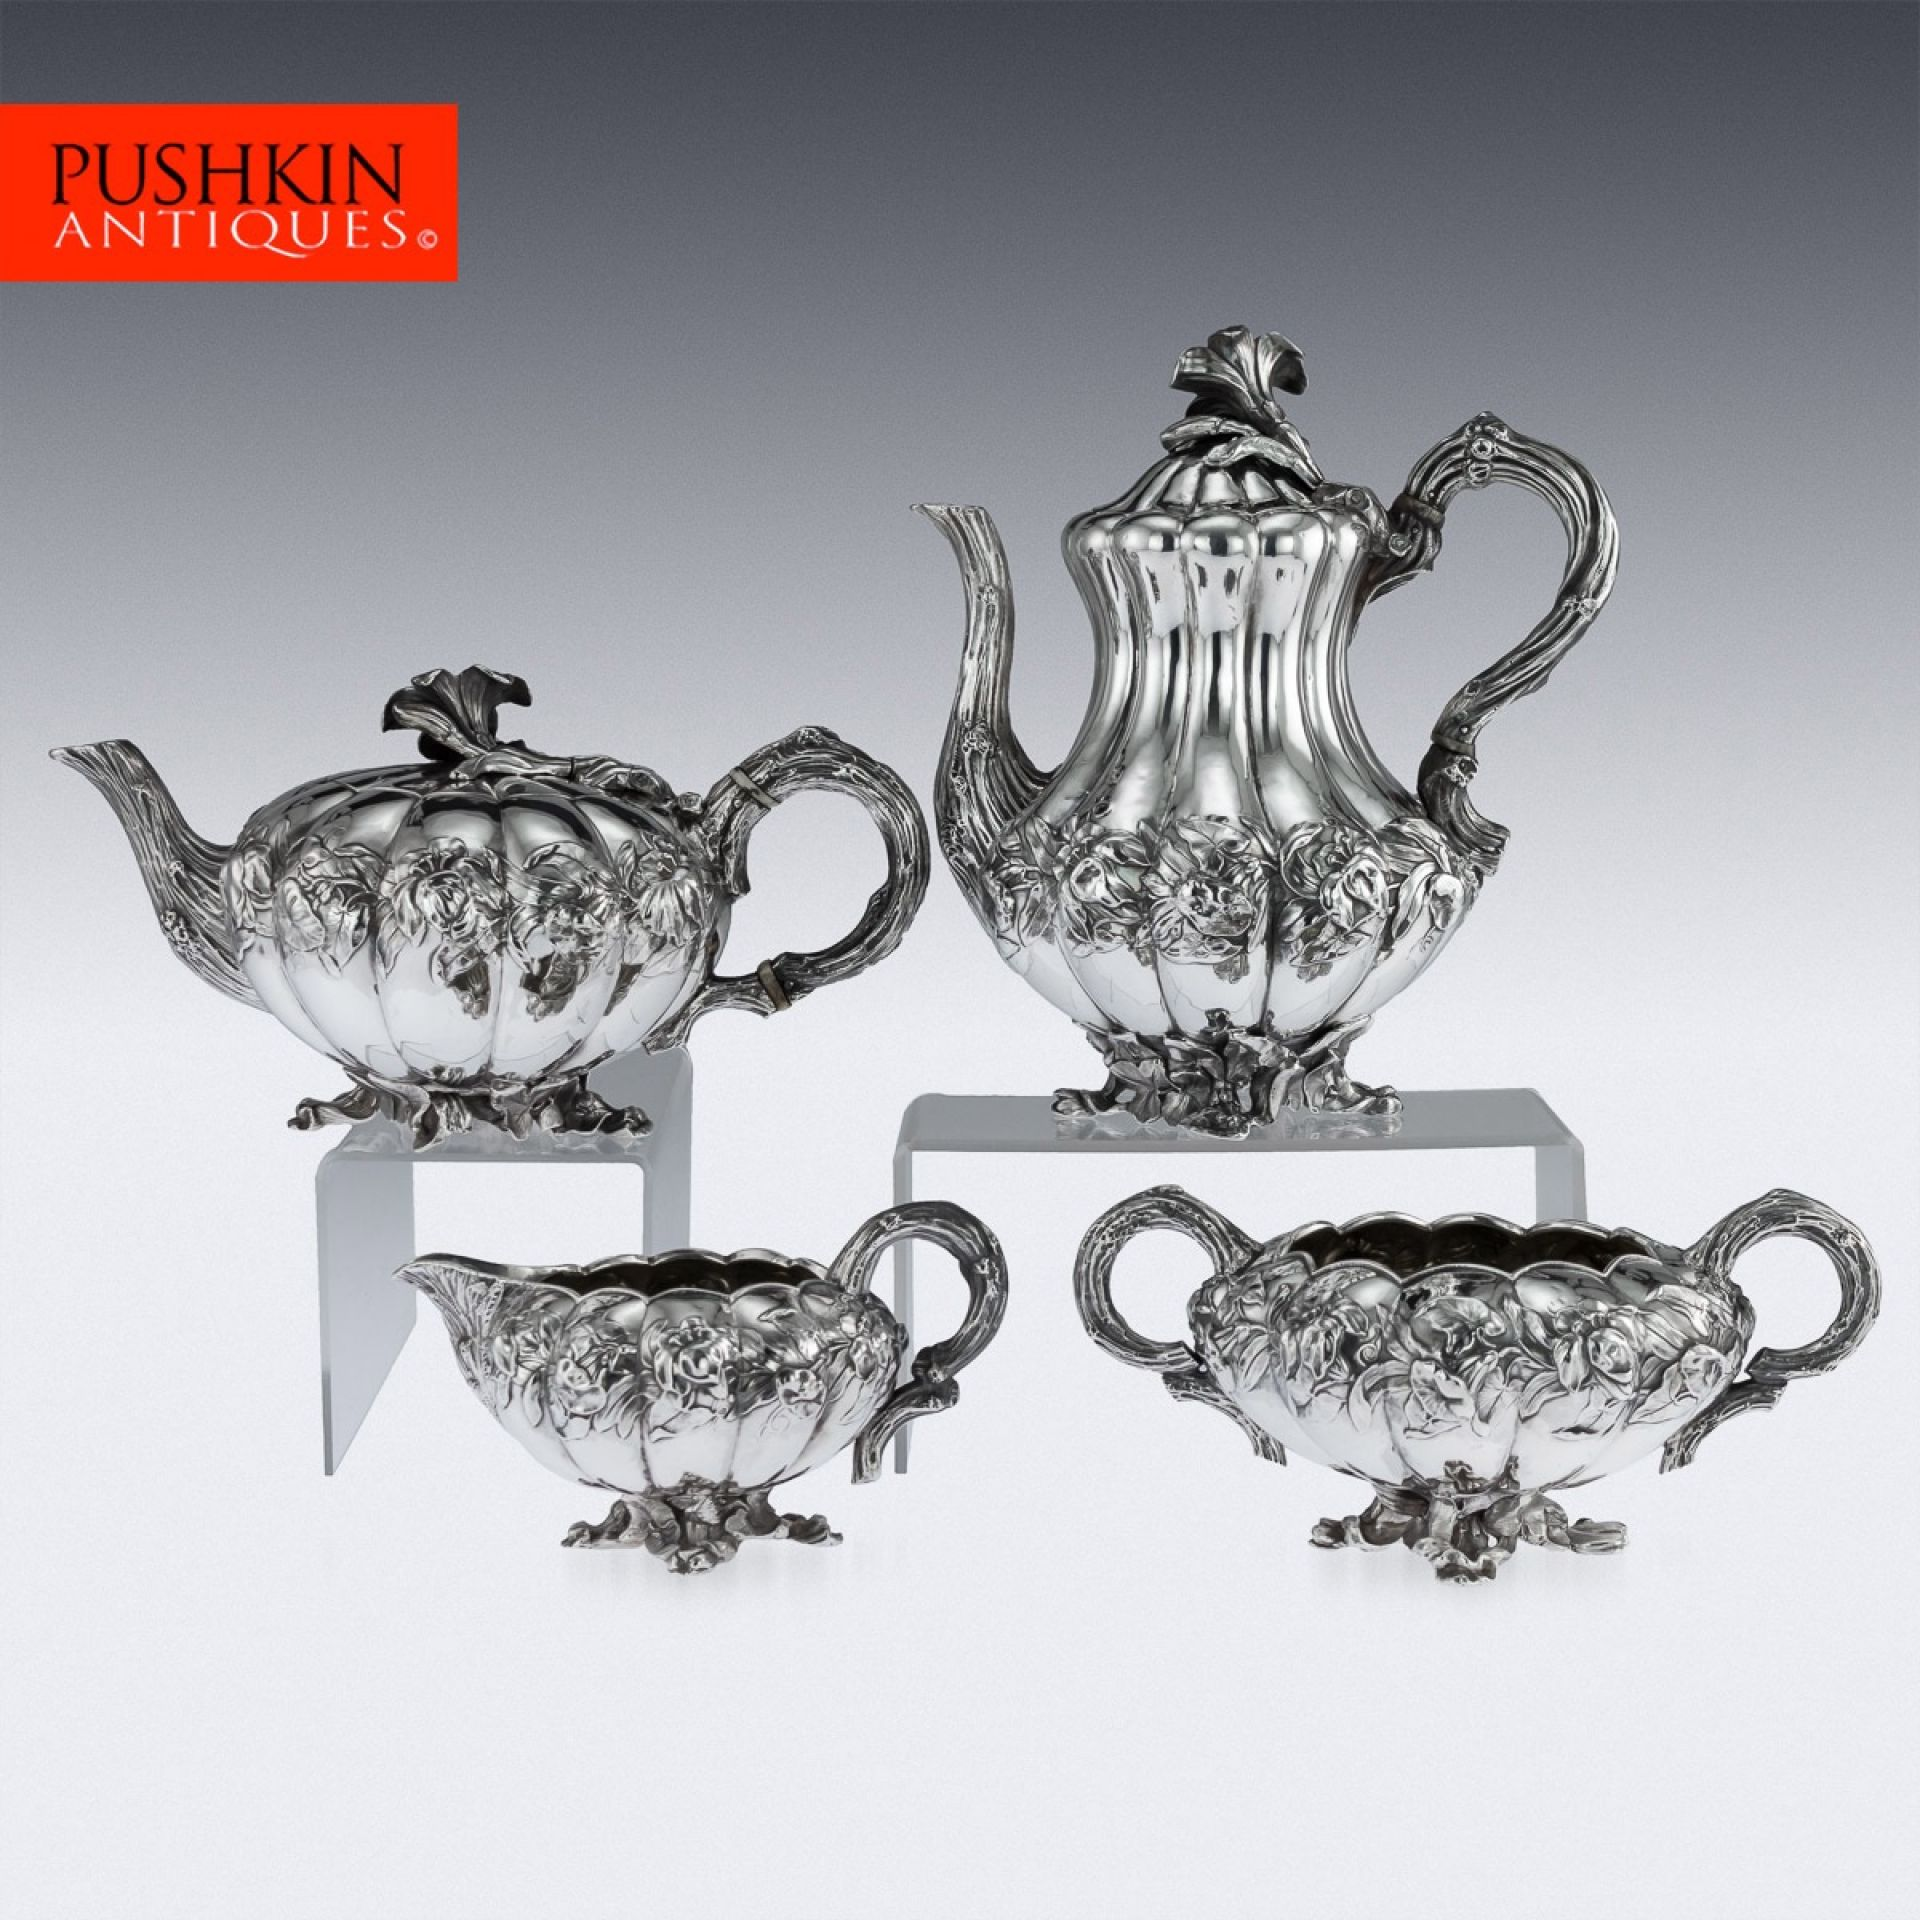 ANTIQUE 19thC REGENCY SOLID SILVER 4 PIECE TEA & COFFEE SERVICE, LONDON c.1831